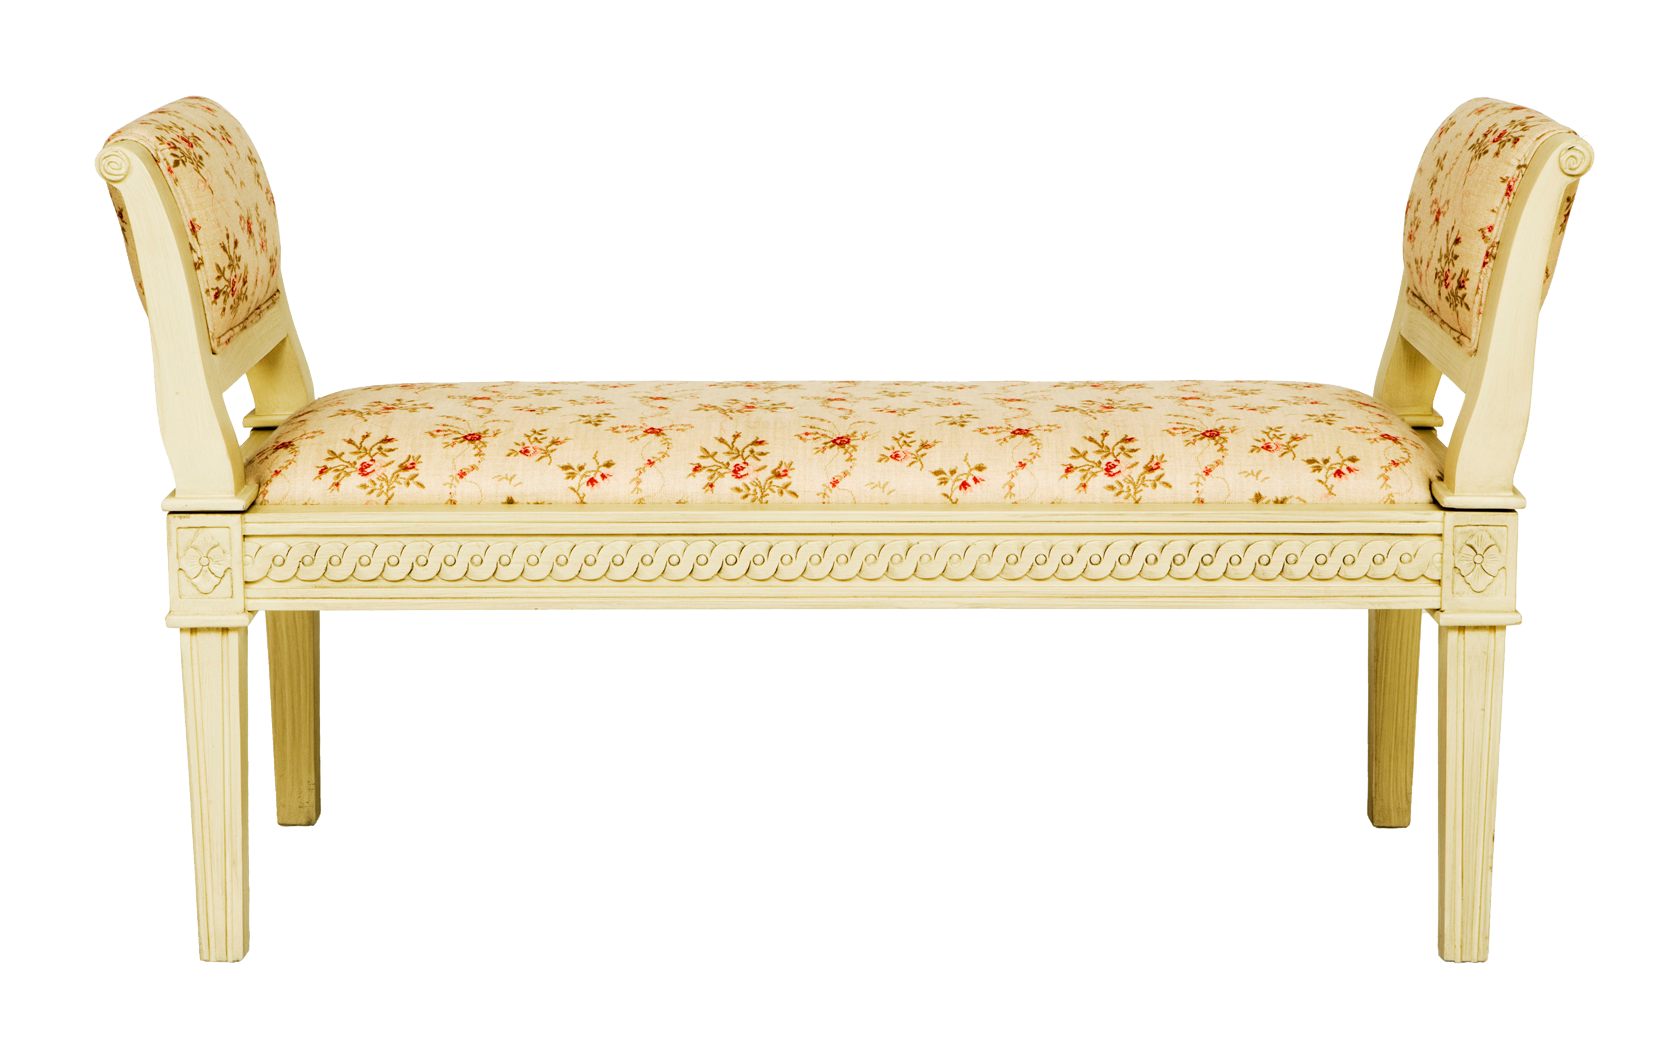 http://features.nordicstyle.com/wp-content/uploads/gustavian_bench_stool1.png